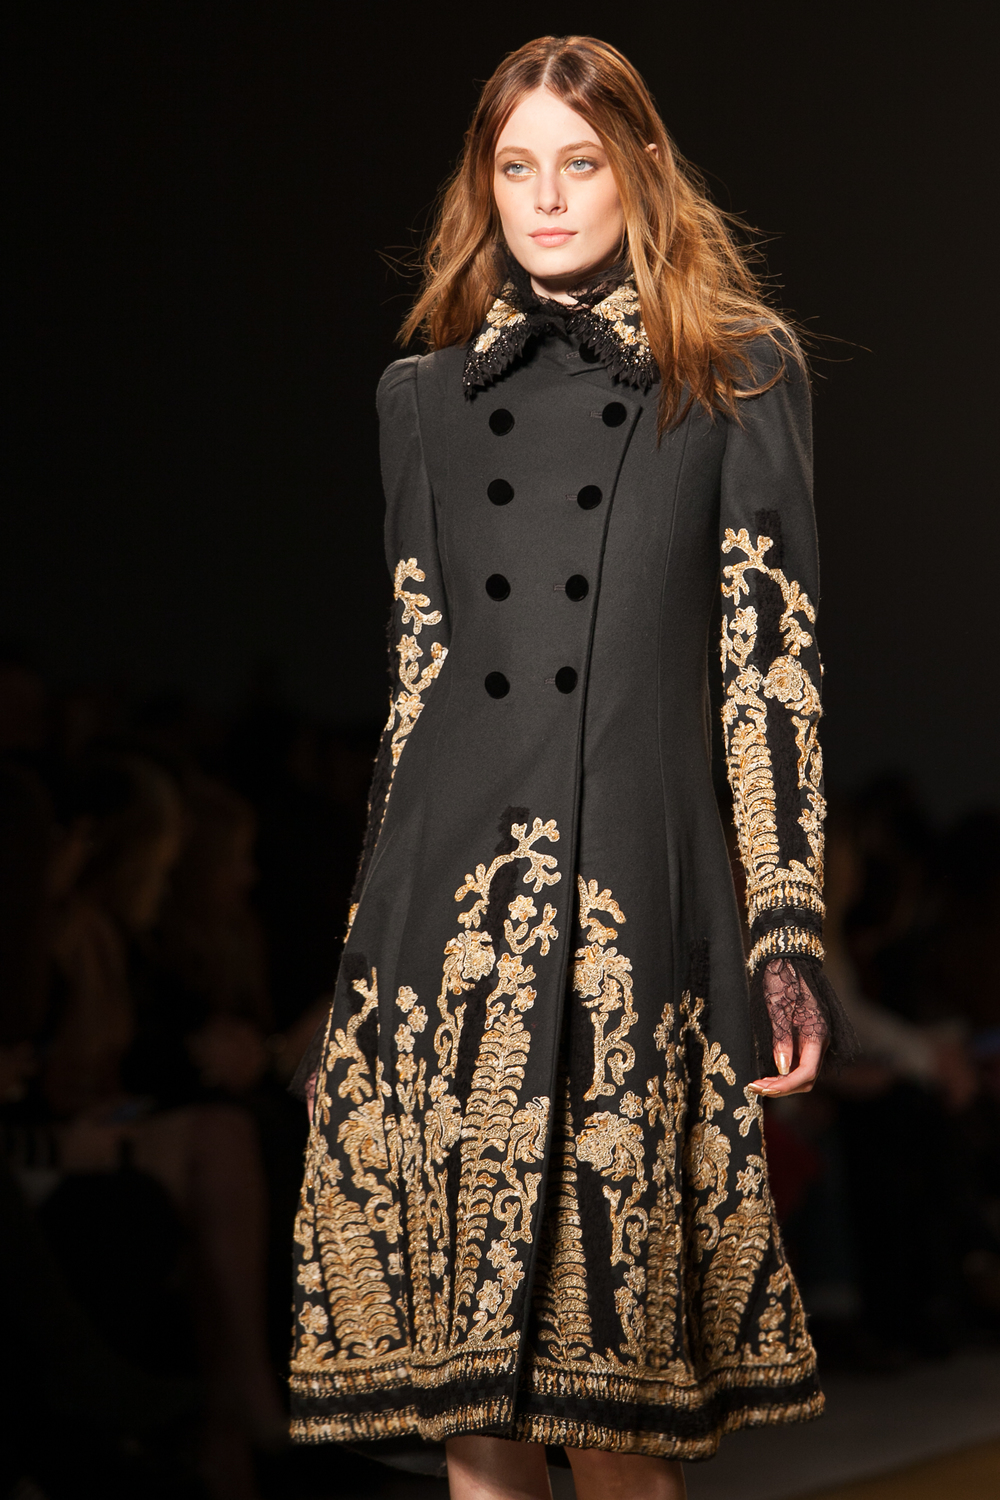 016-Reem-Acra-New-York-Fashion-Week-Fall-Winter-2015-Shana-Schnur-Photography-016.jpg